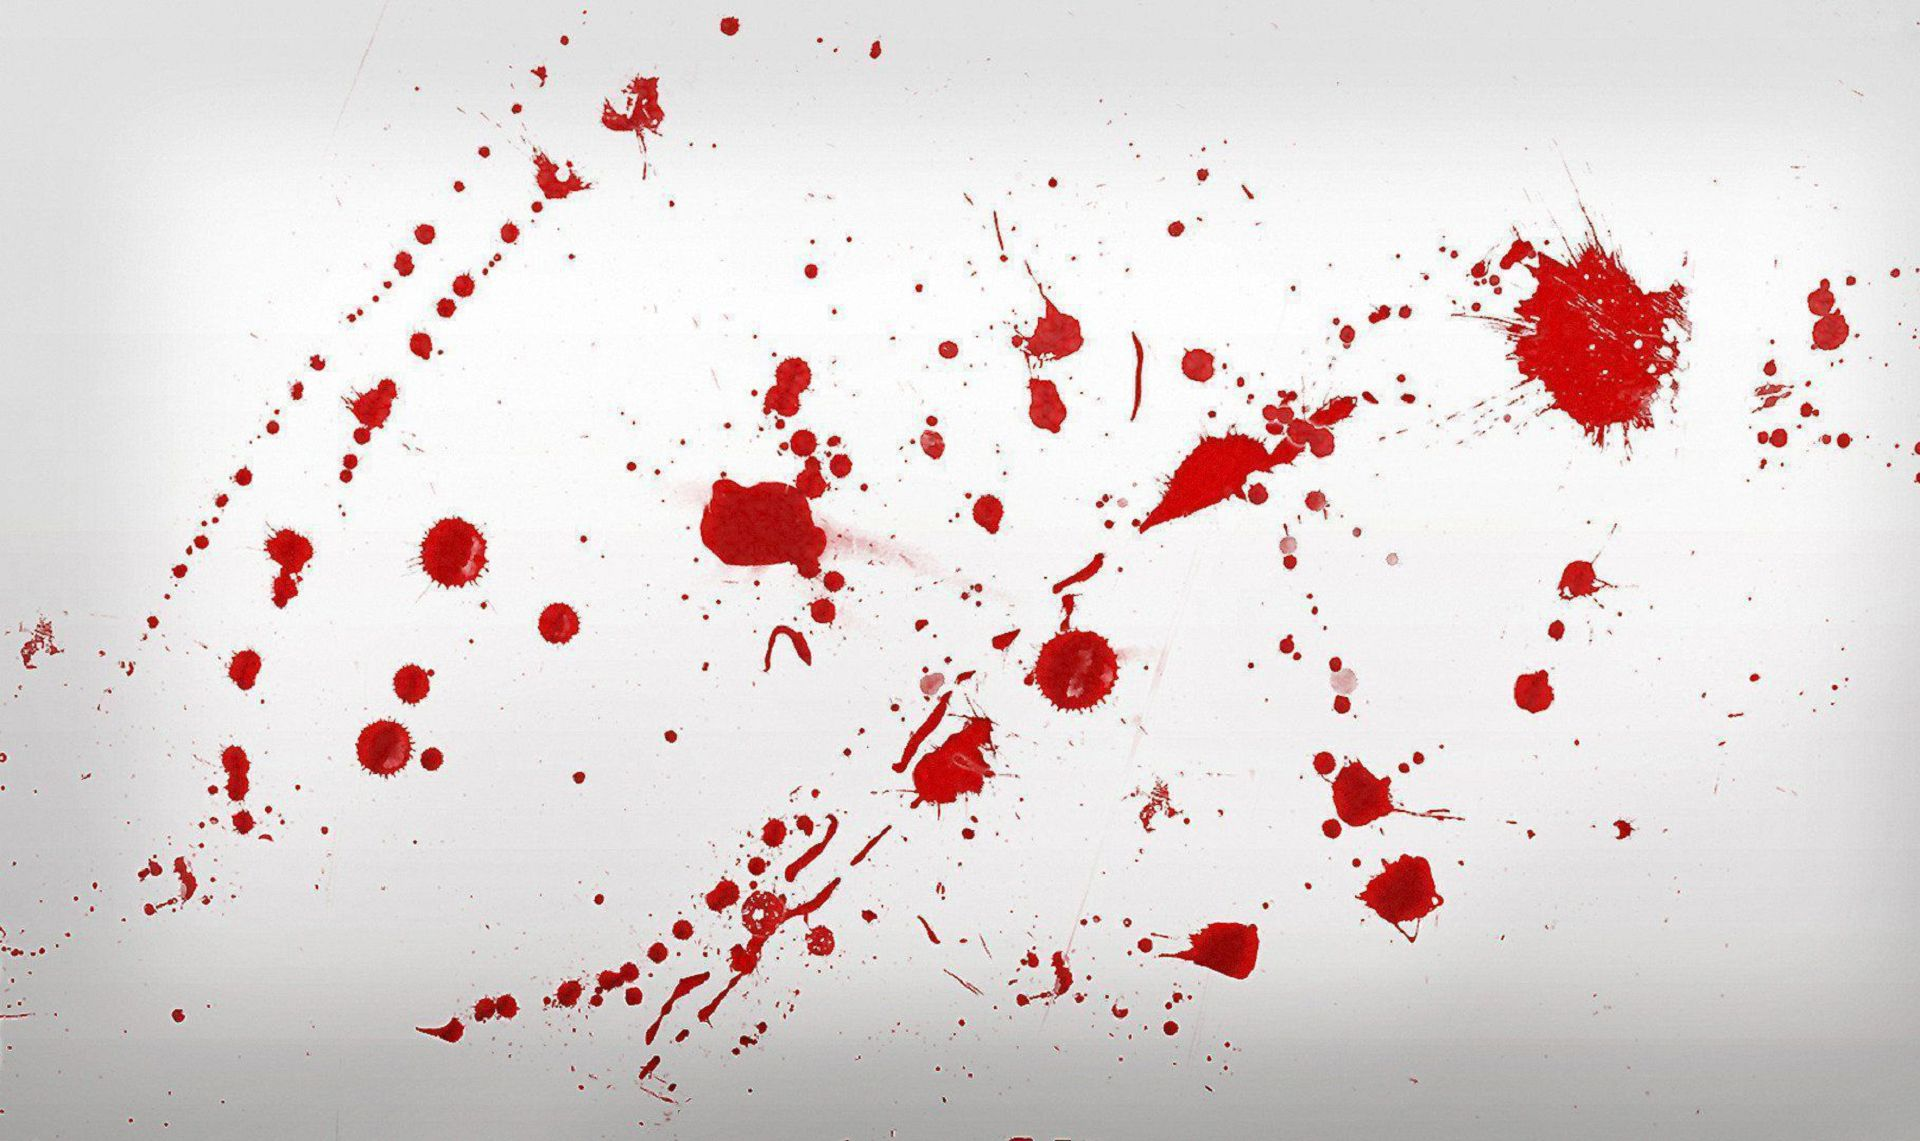 Blood Splatter High Definition Wallpapers